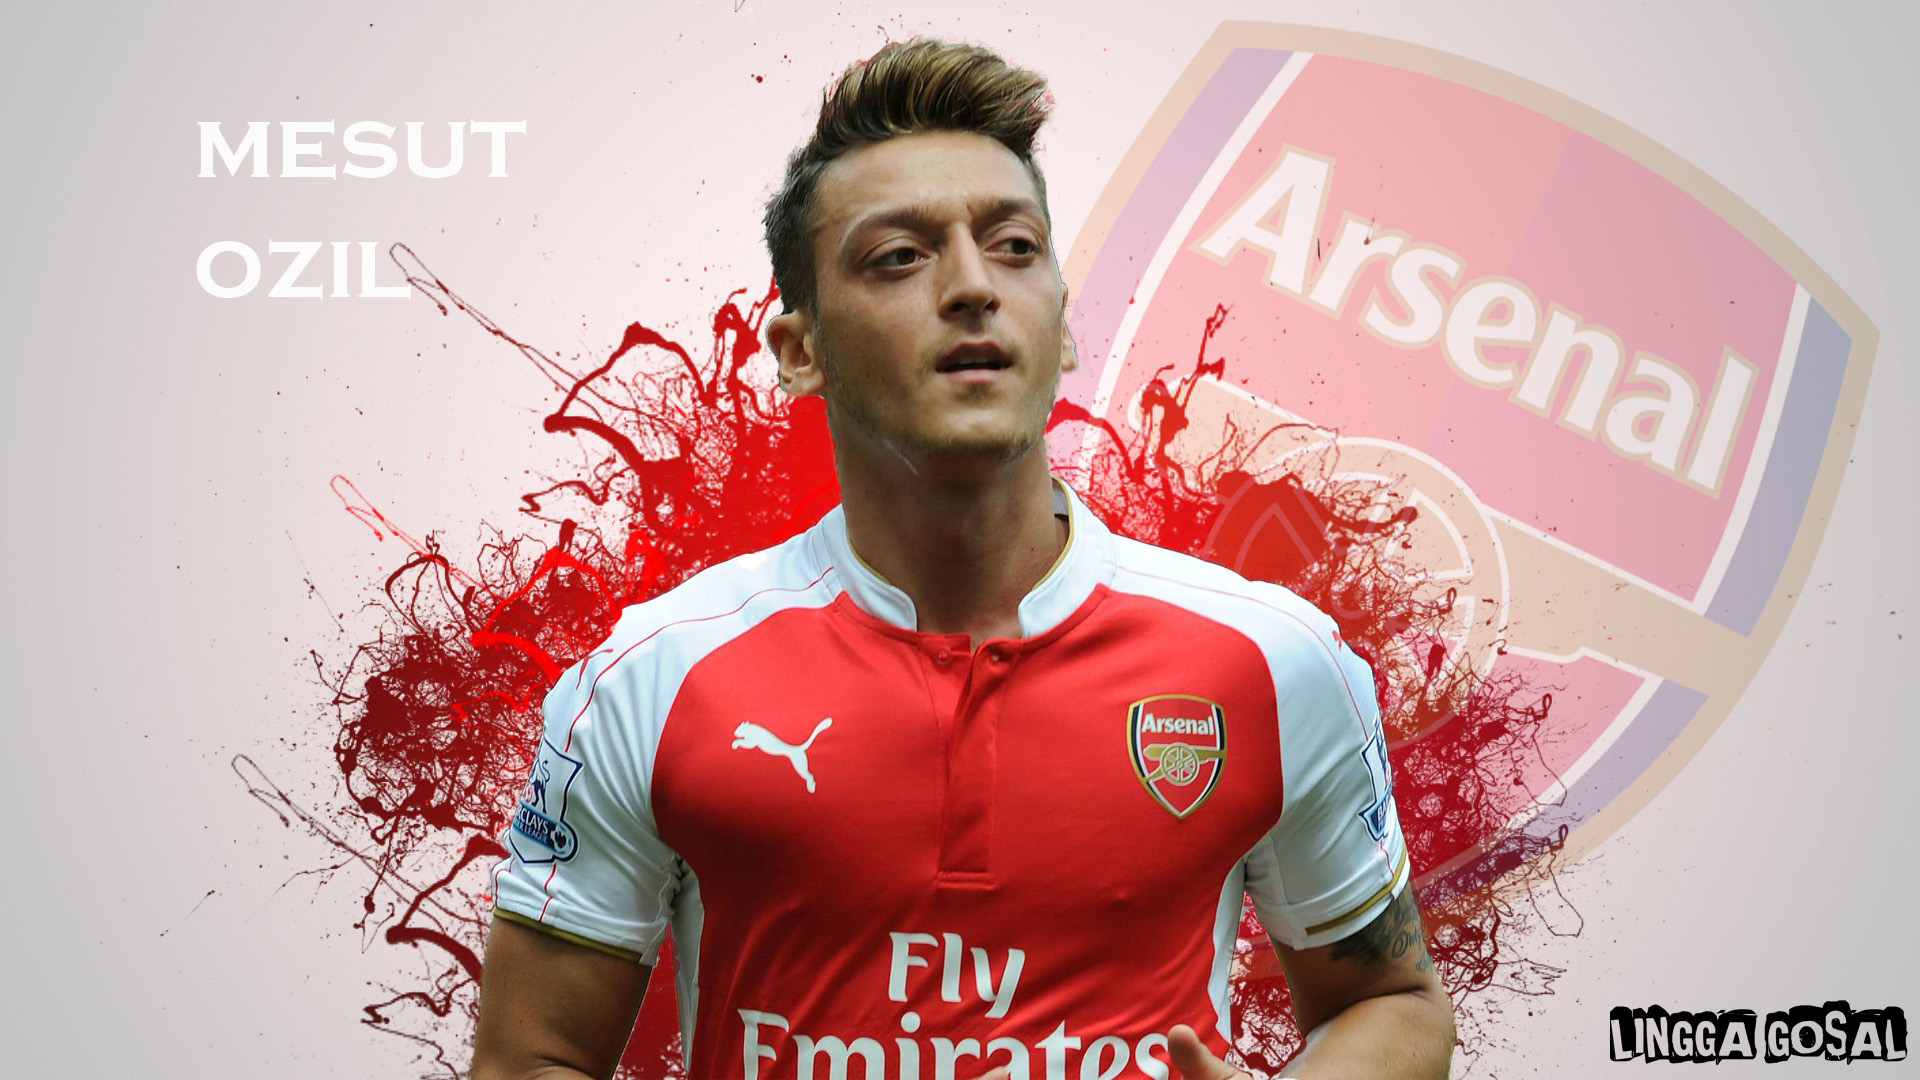 mesut ozil 2016 hd wallpaper by linggagosal6661 on deviantart